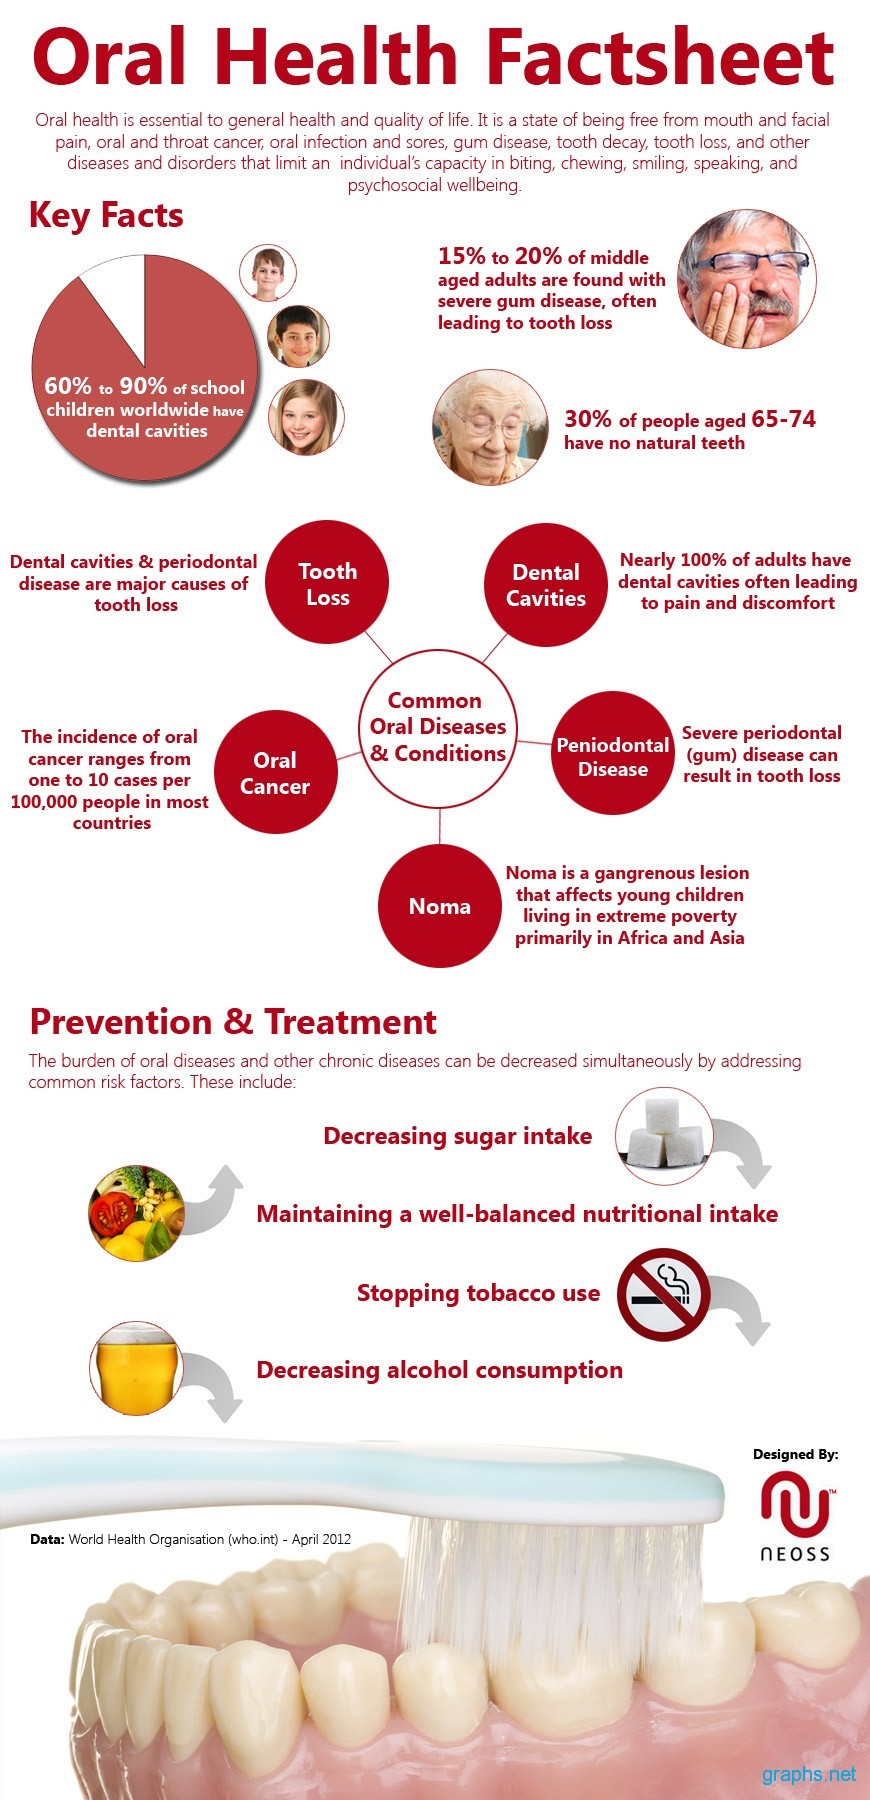 How to Prevent Heart Disease in Kids How to Prevent Heart Disease in Kids new picture